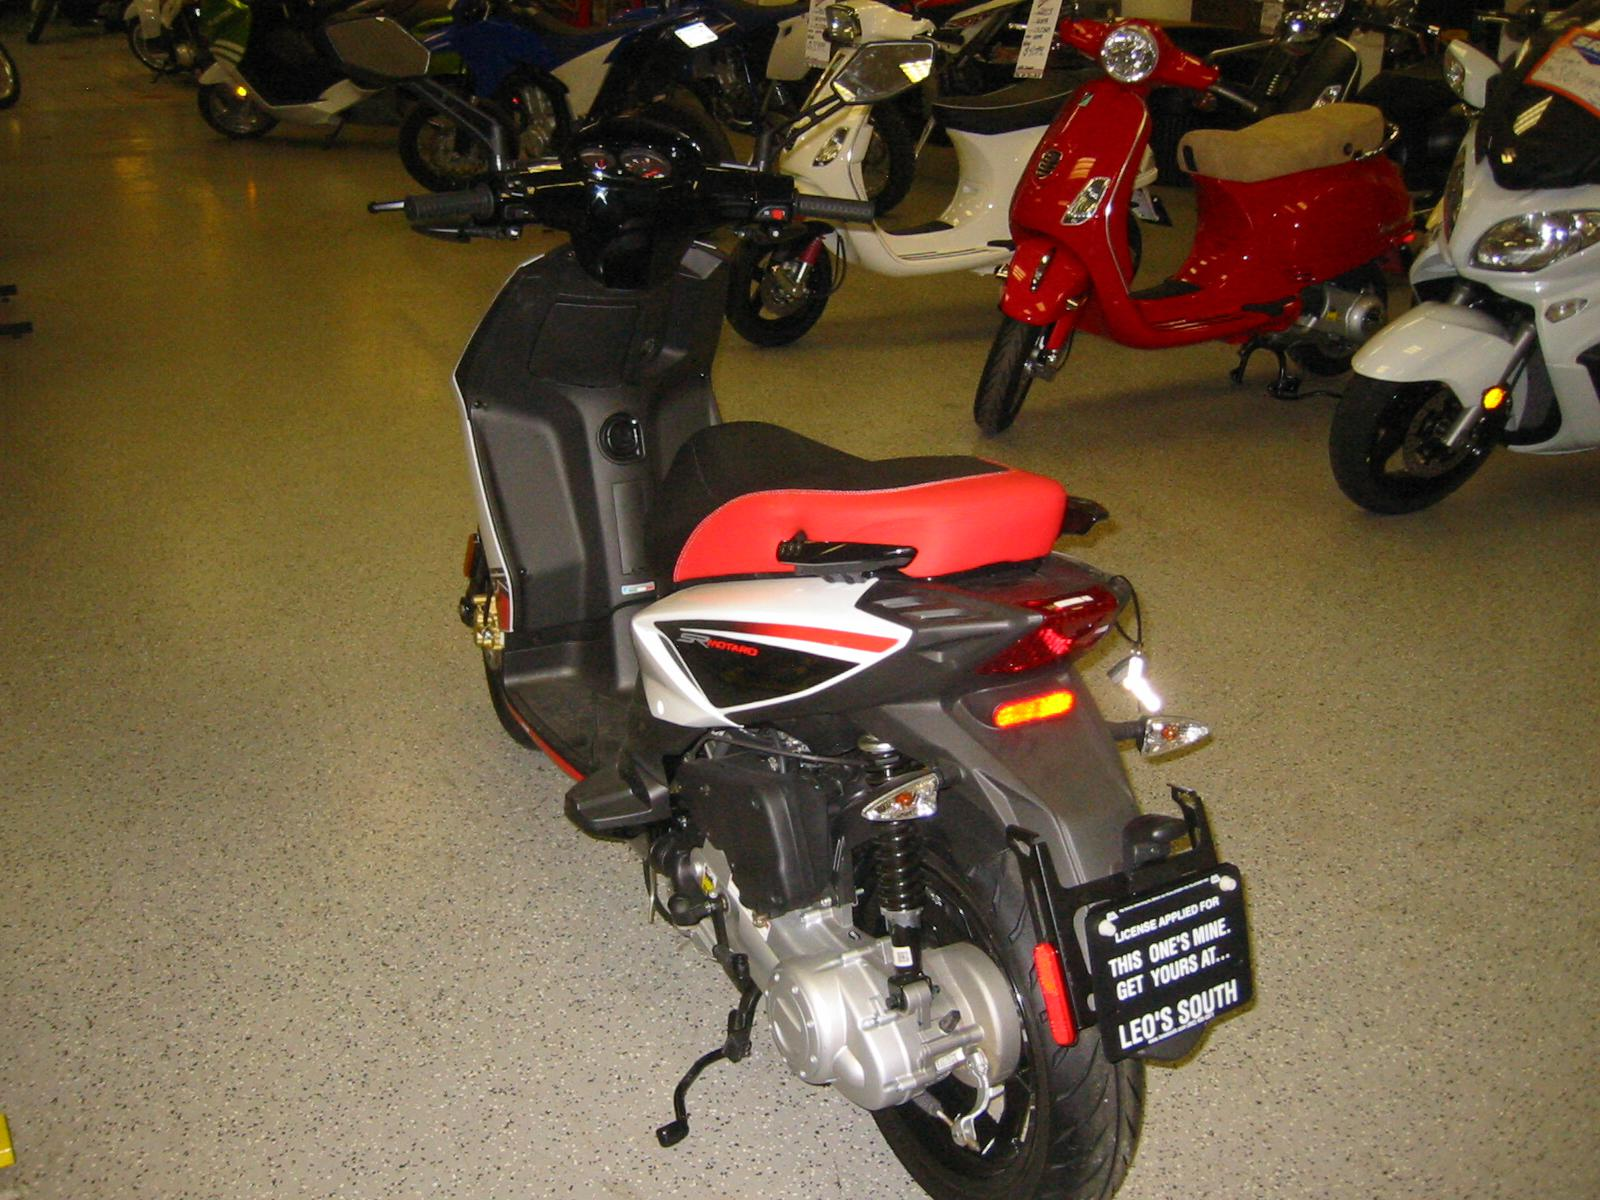 2014 aprilia sr 50 motard 4t scooter motorcycle from lakeville mn today sale 1 899. Black Bedroom Furniture Sets. Home Design Ideas